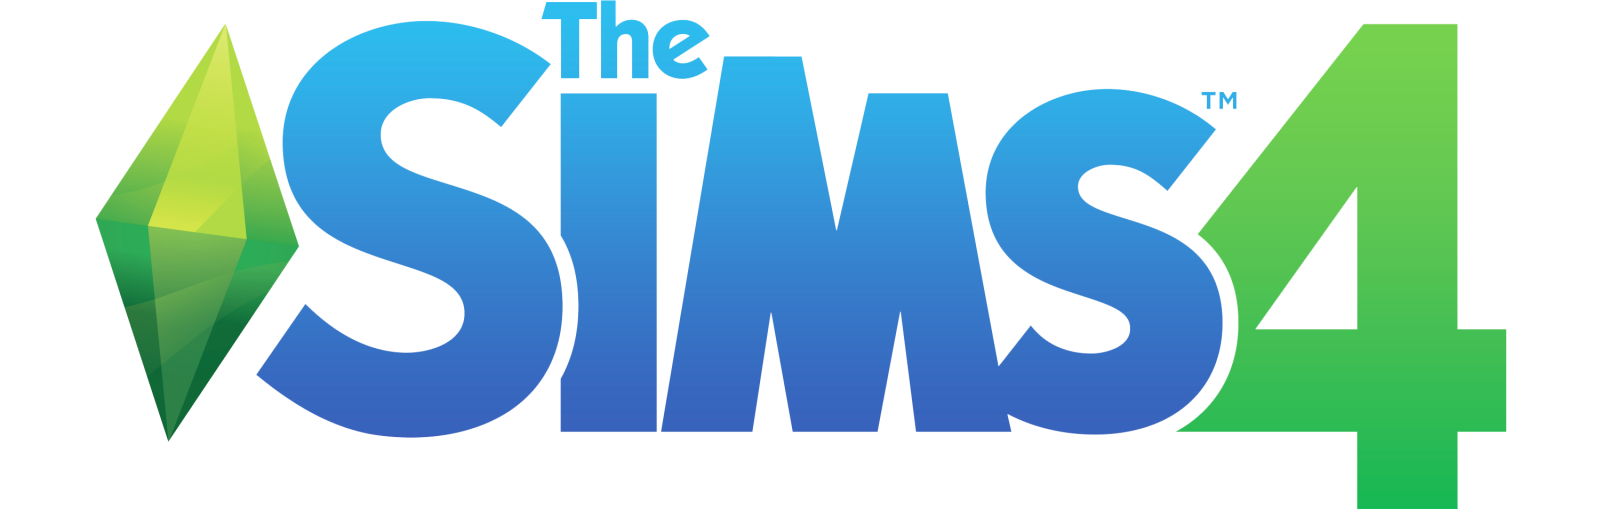 Sims 3 png files. Image the logo c